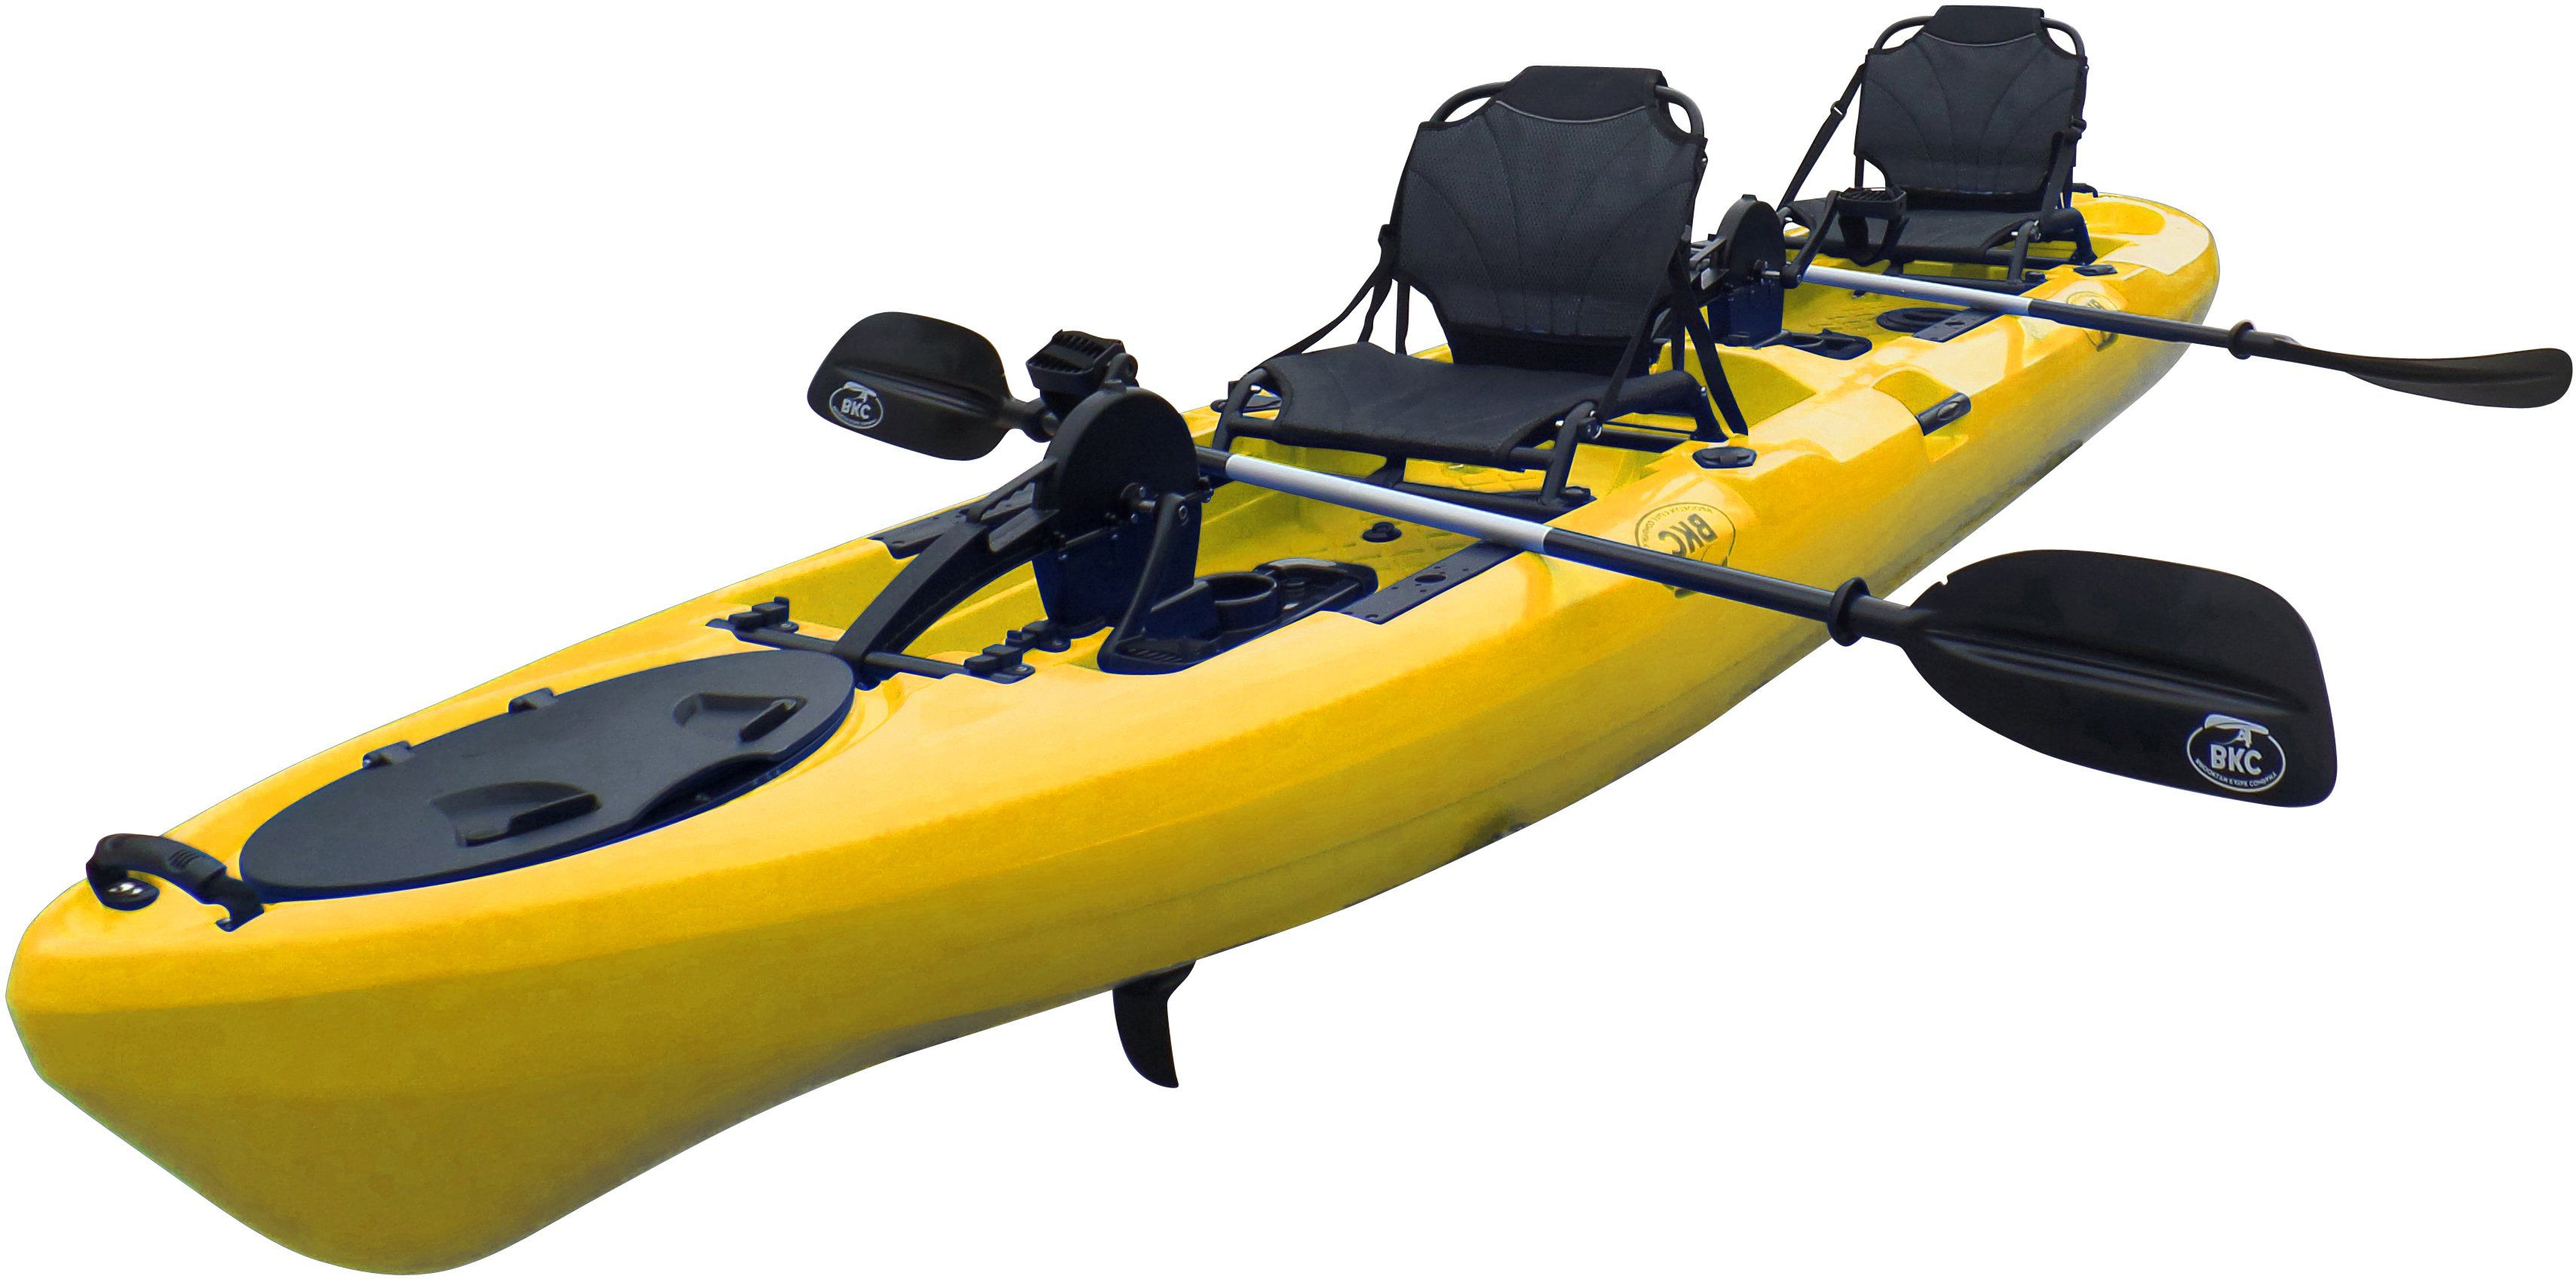 Bkc Pk14 14 Tandem Sit On Top Pedal Drive Kayak W Rudder System And Instant Reverse 2 Paddles 2 Upright Back Support Aluminum Frame Seats 2 Person Foot Oper Pedal Kayak